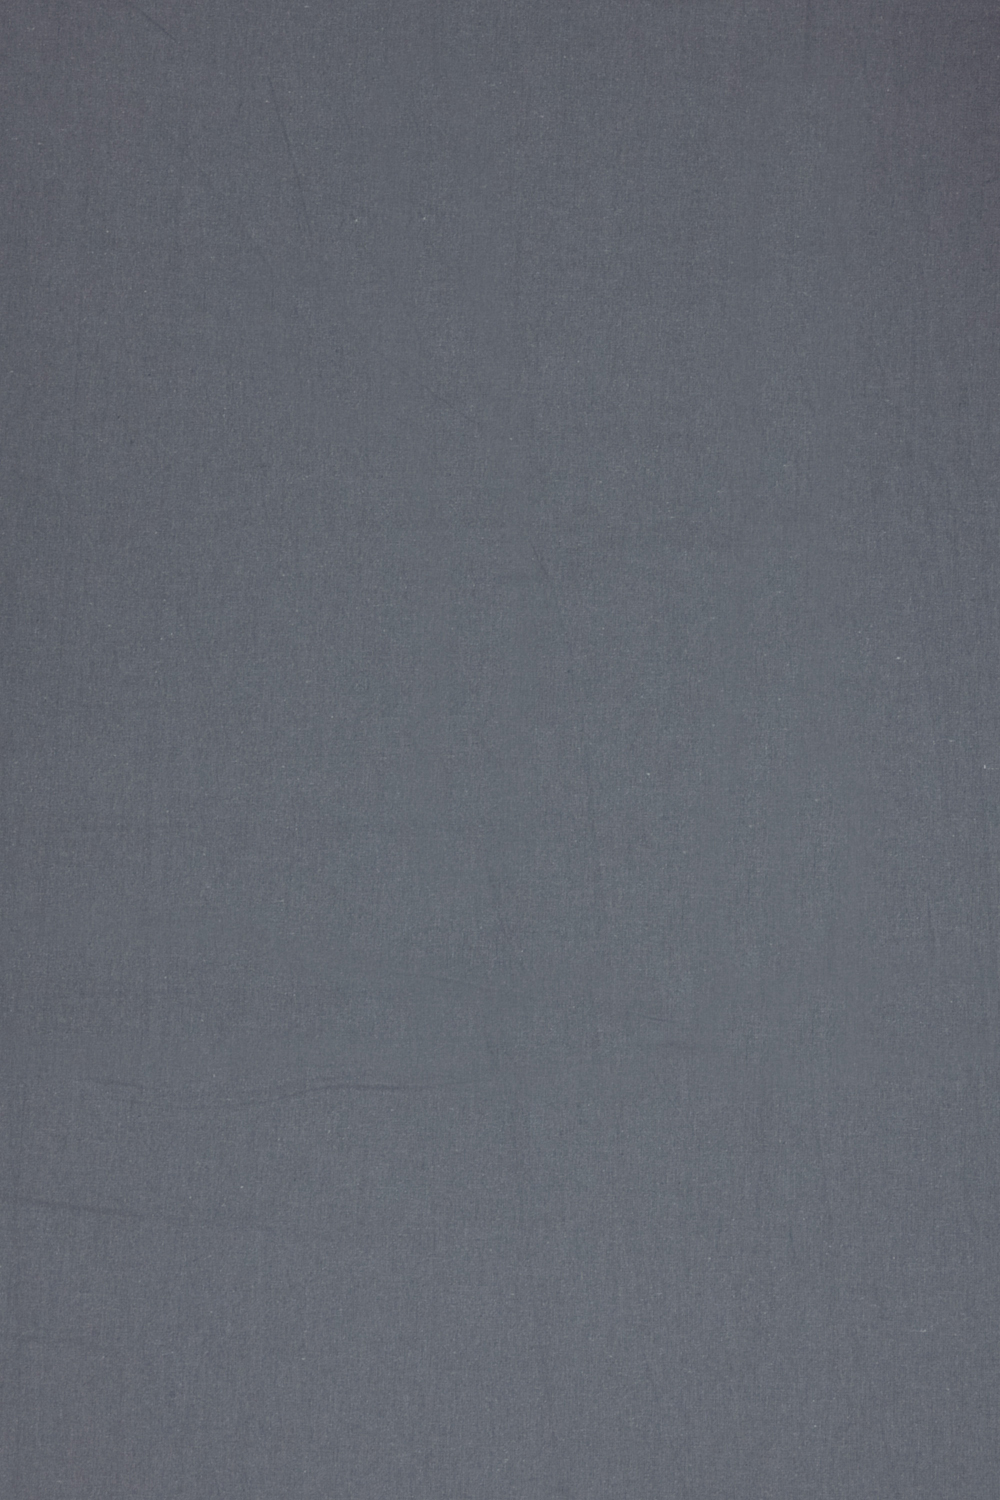 Image gallery solid grey for Cheap plain grey wallpaper